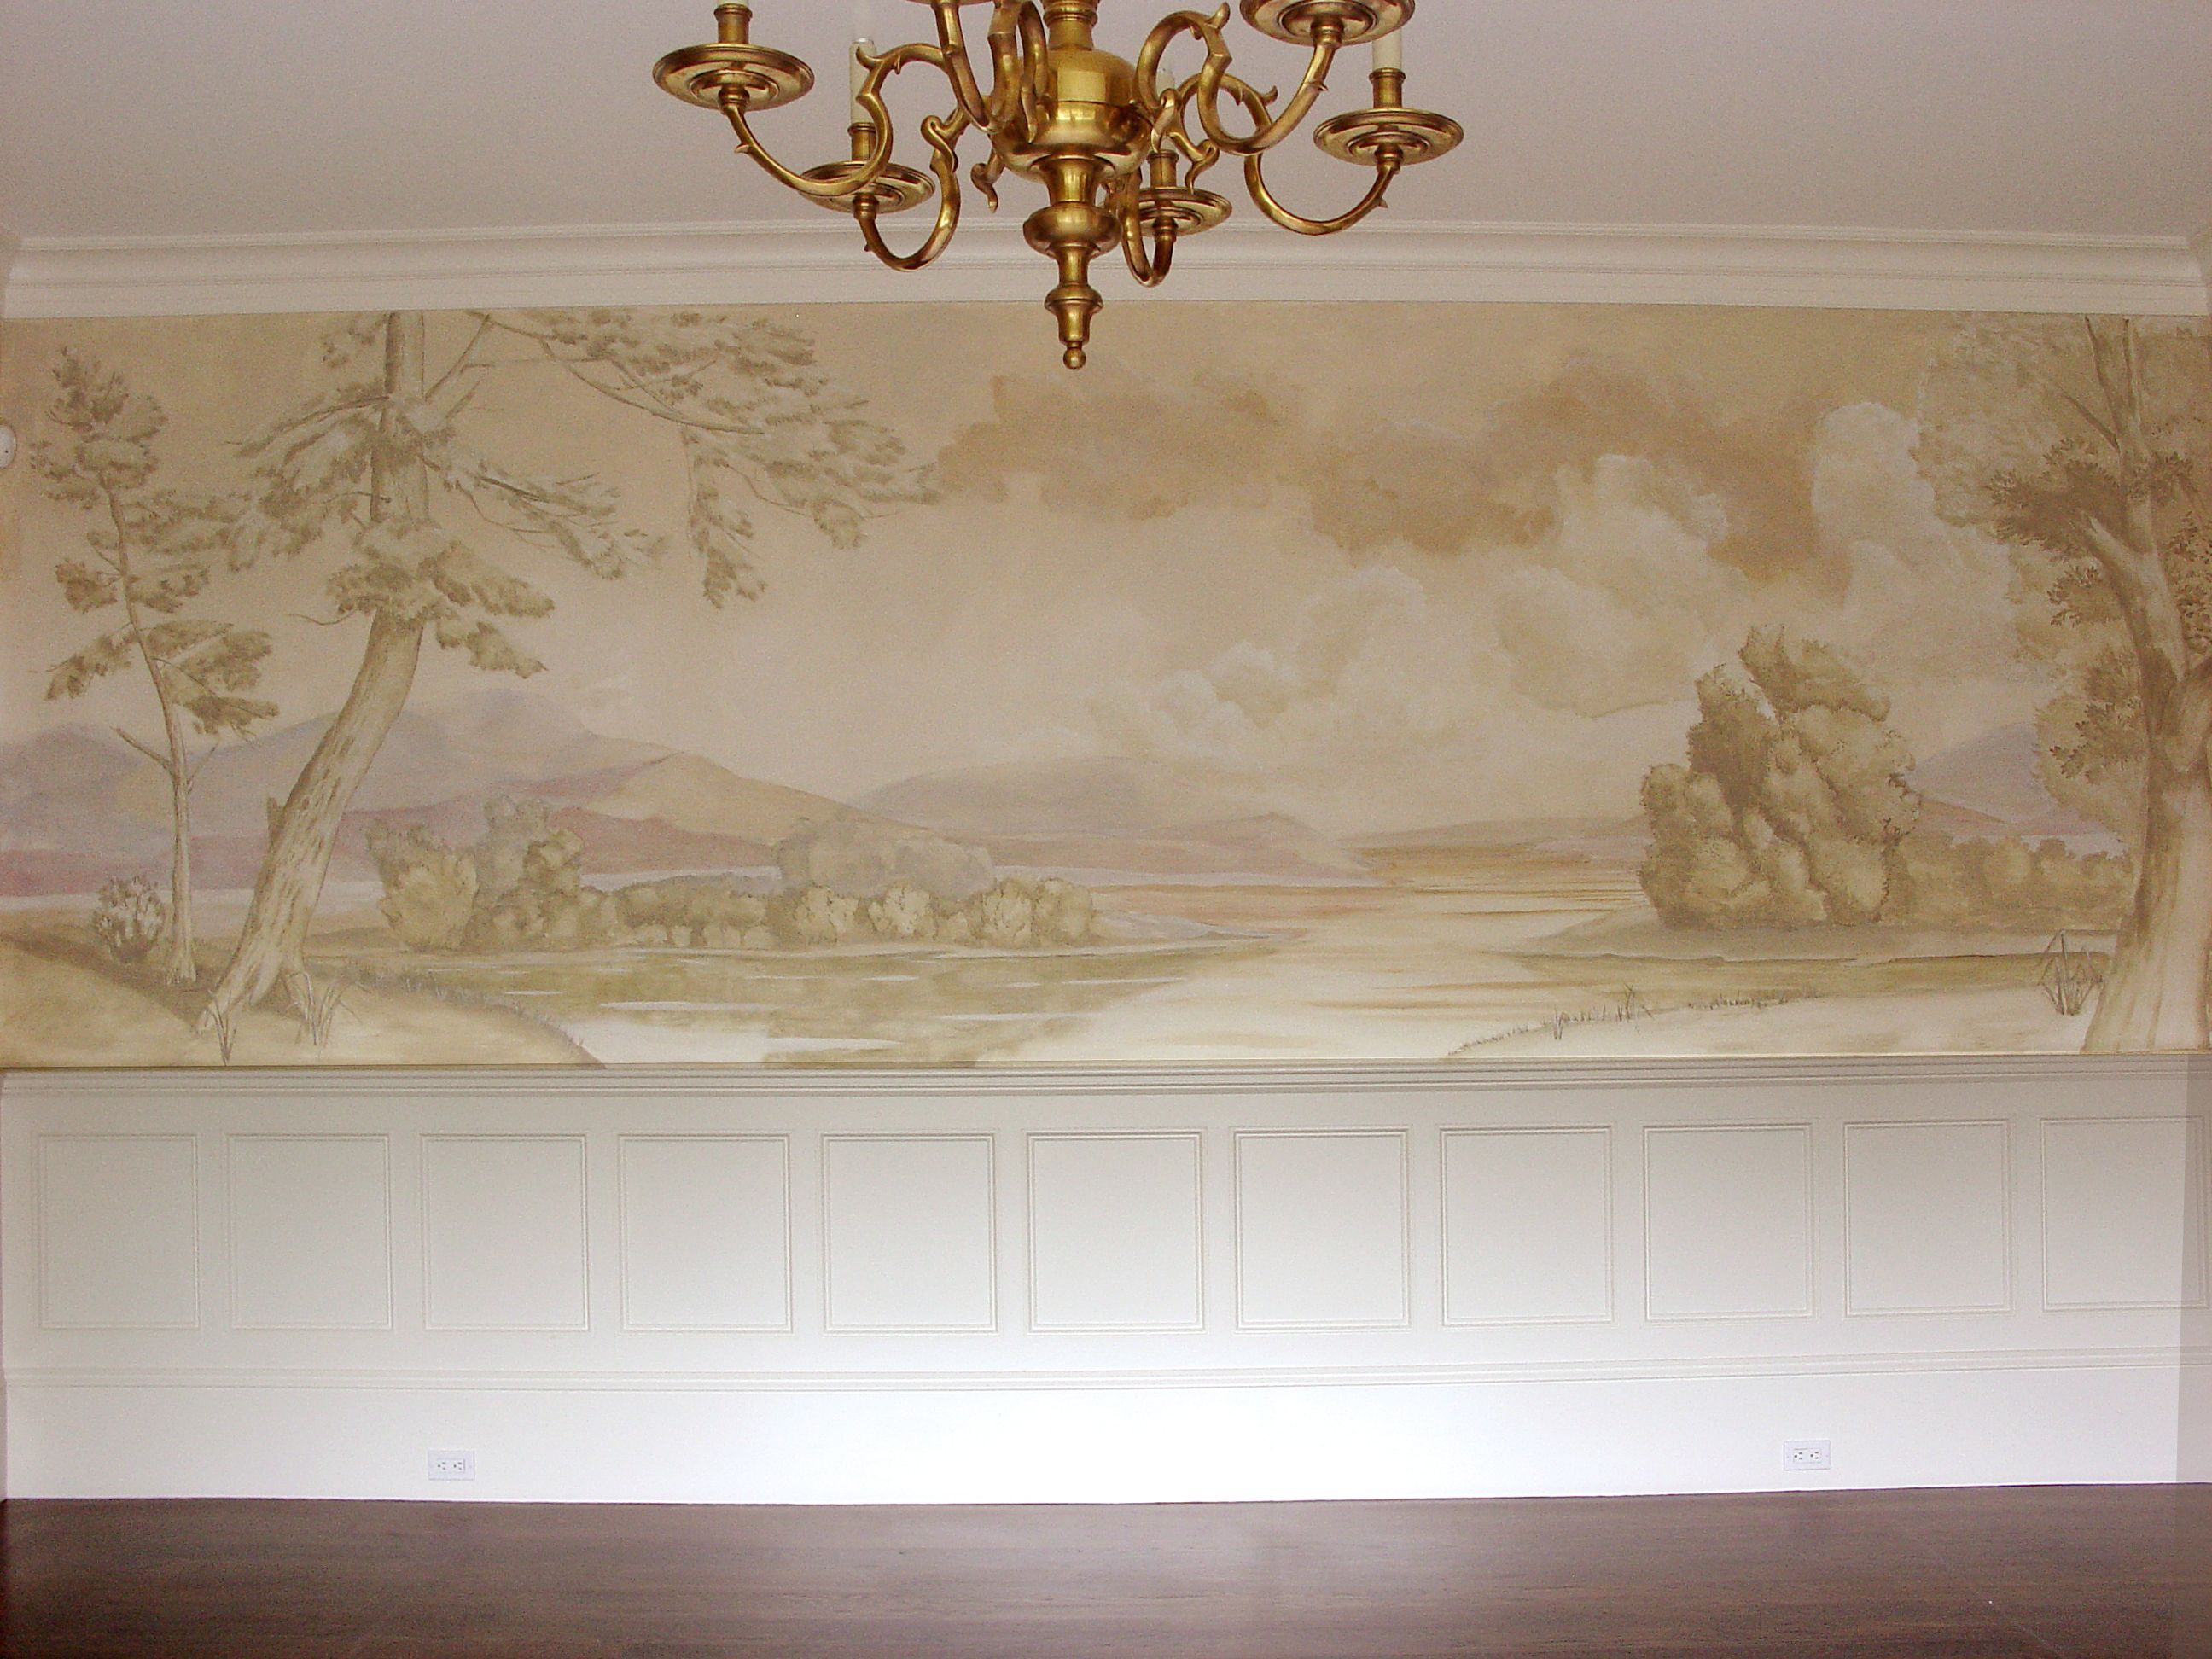 Dining Room Landscape Mural In Monochromatic Colors Mural Mural Painting Painting